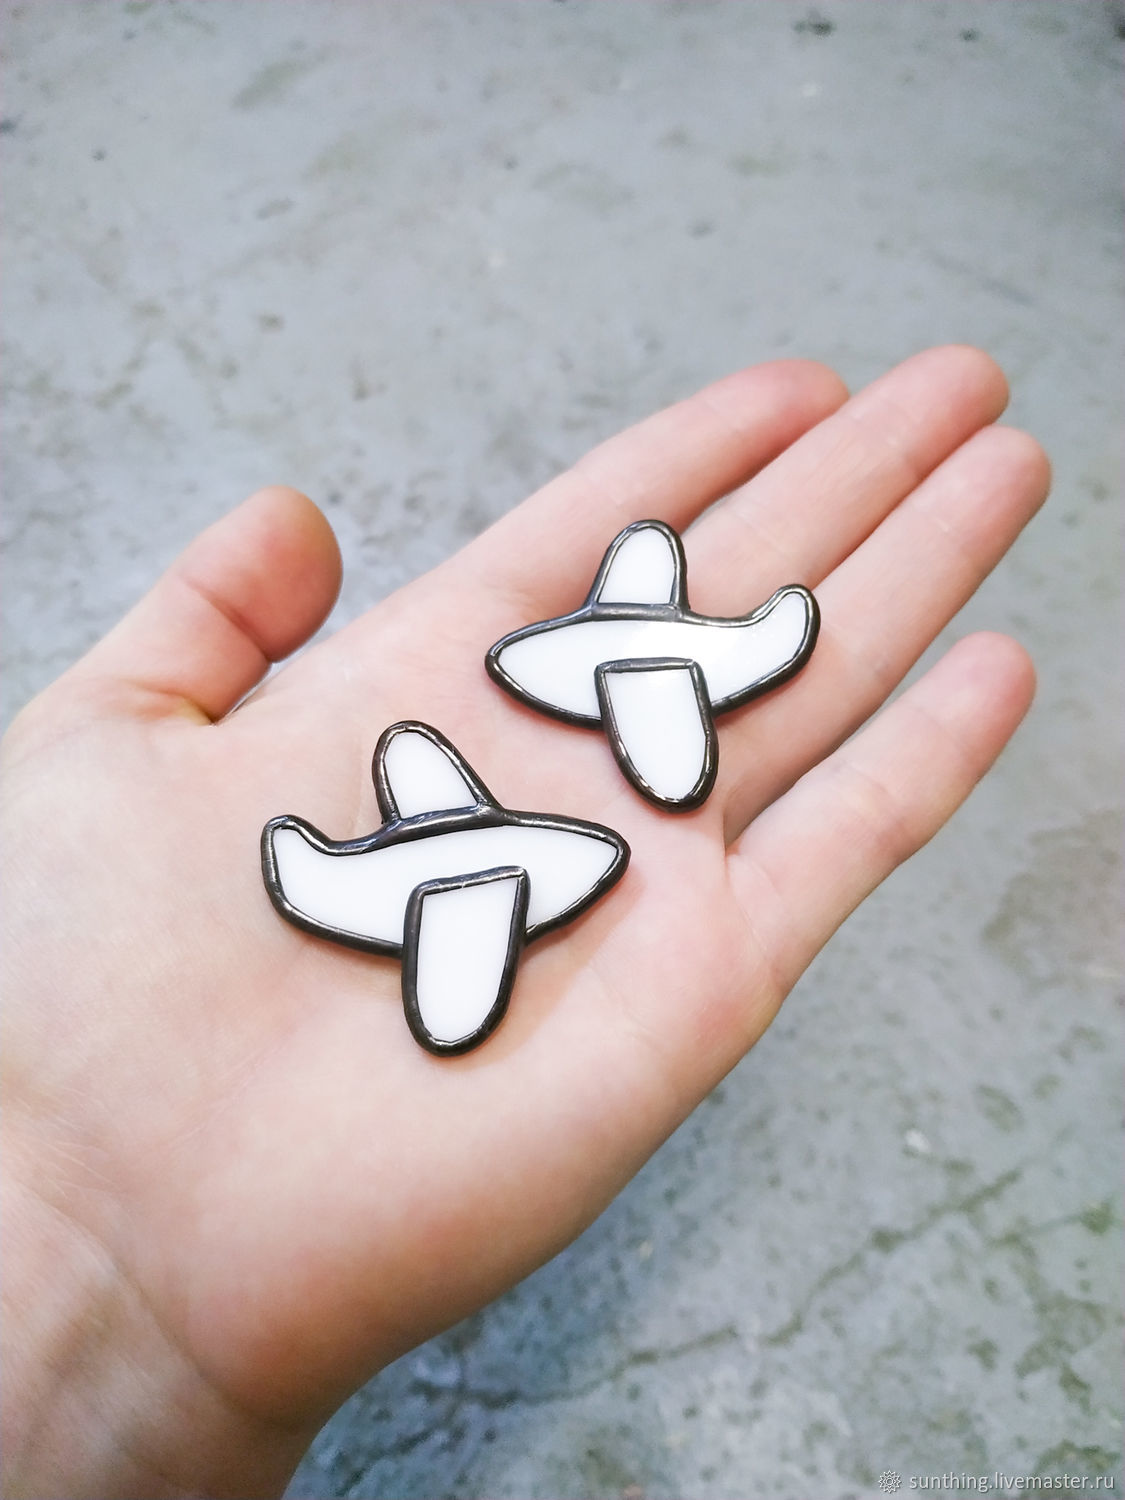 Brooch made of white glass 'Aircraft', Brooches, St. Petersburg,  Фото №1